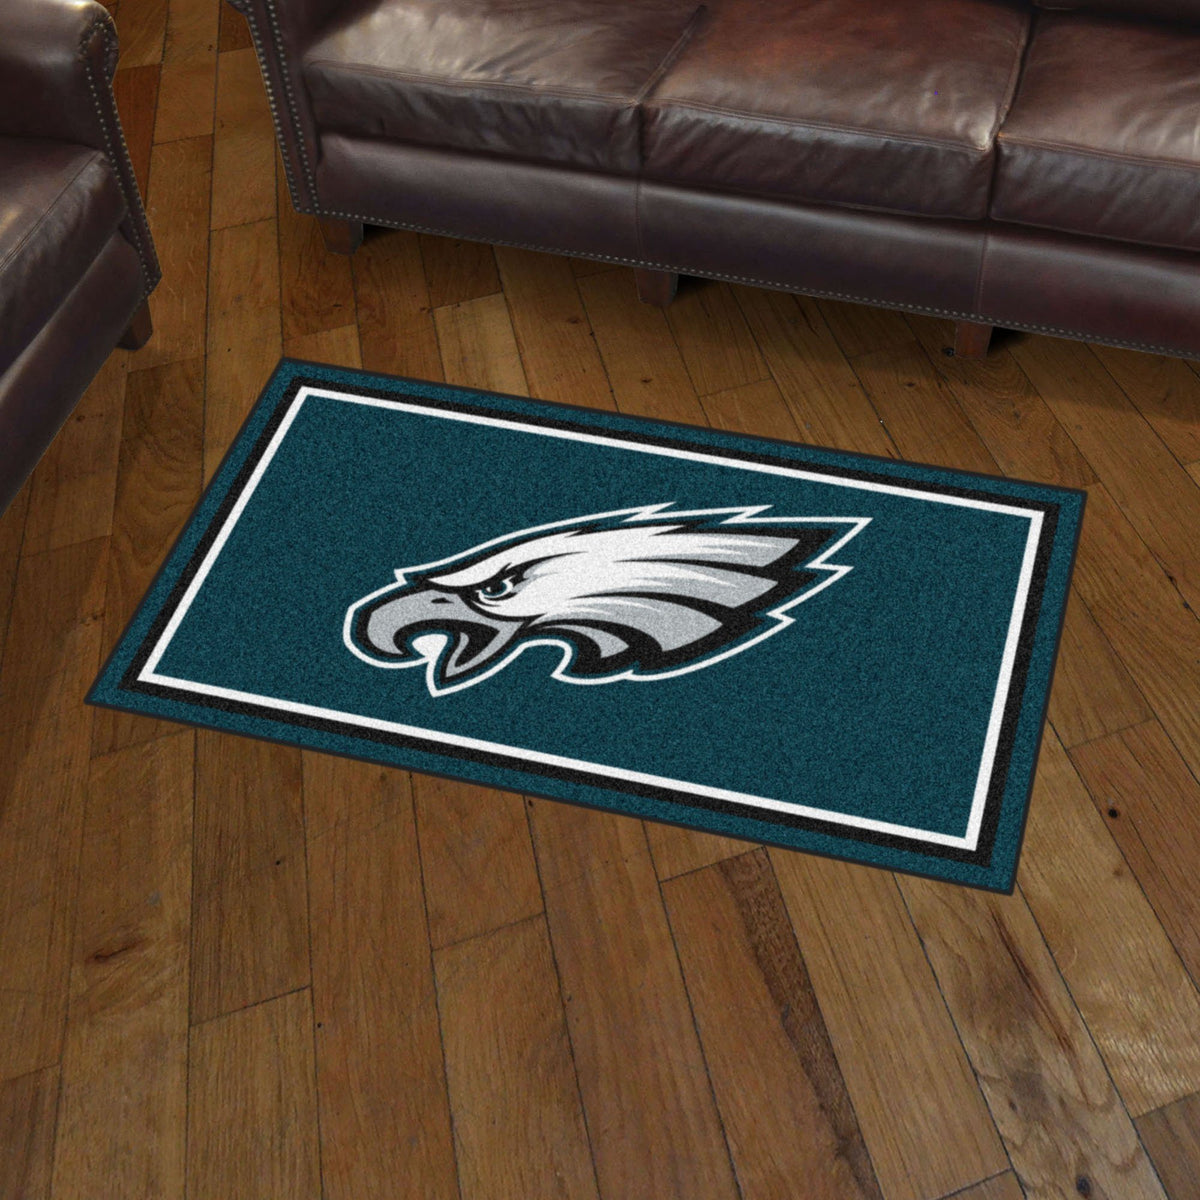 NFL - 3' x 5' Rug NFL Mats, Plush Rugs, 3x5 Rug, NFL, Home Fan Mats Philadelphia Eagles